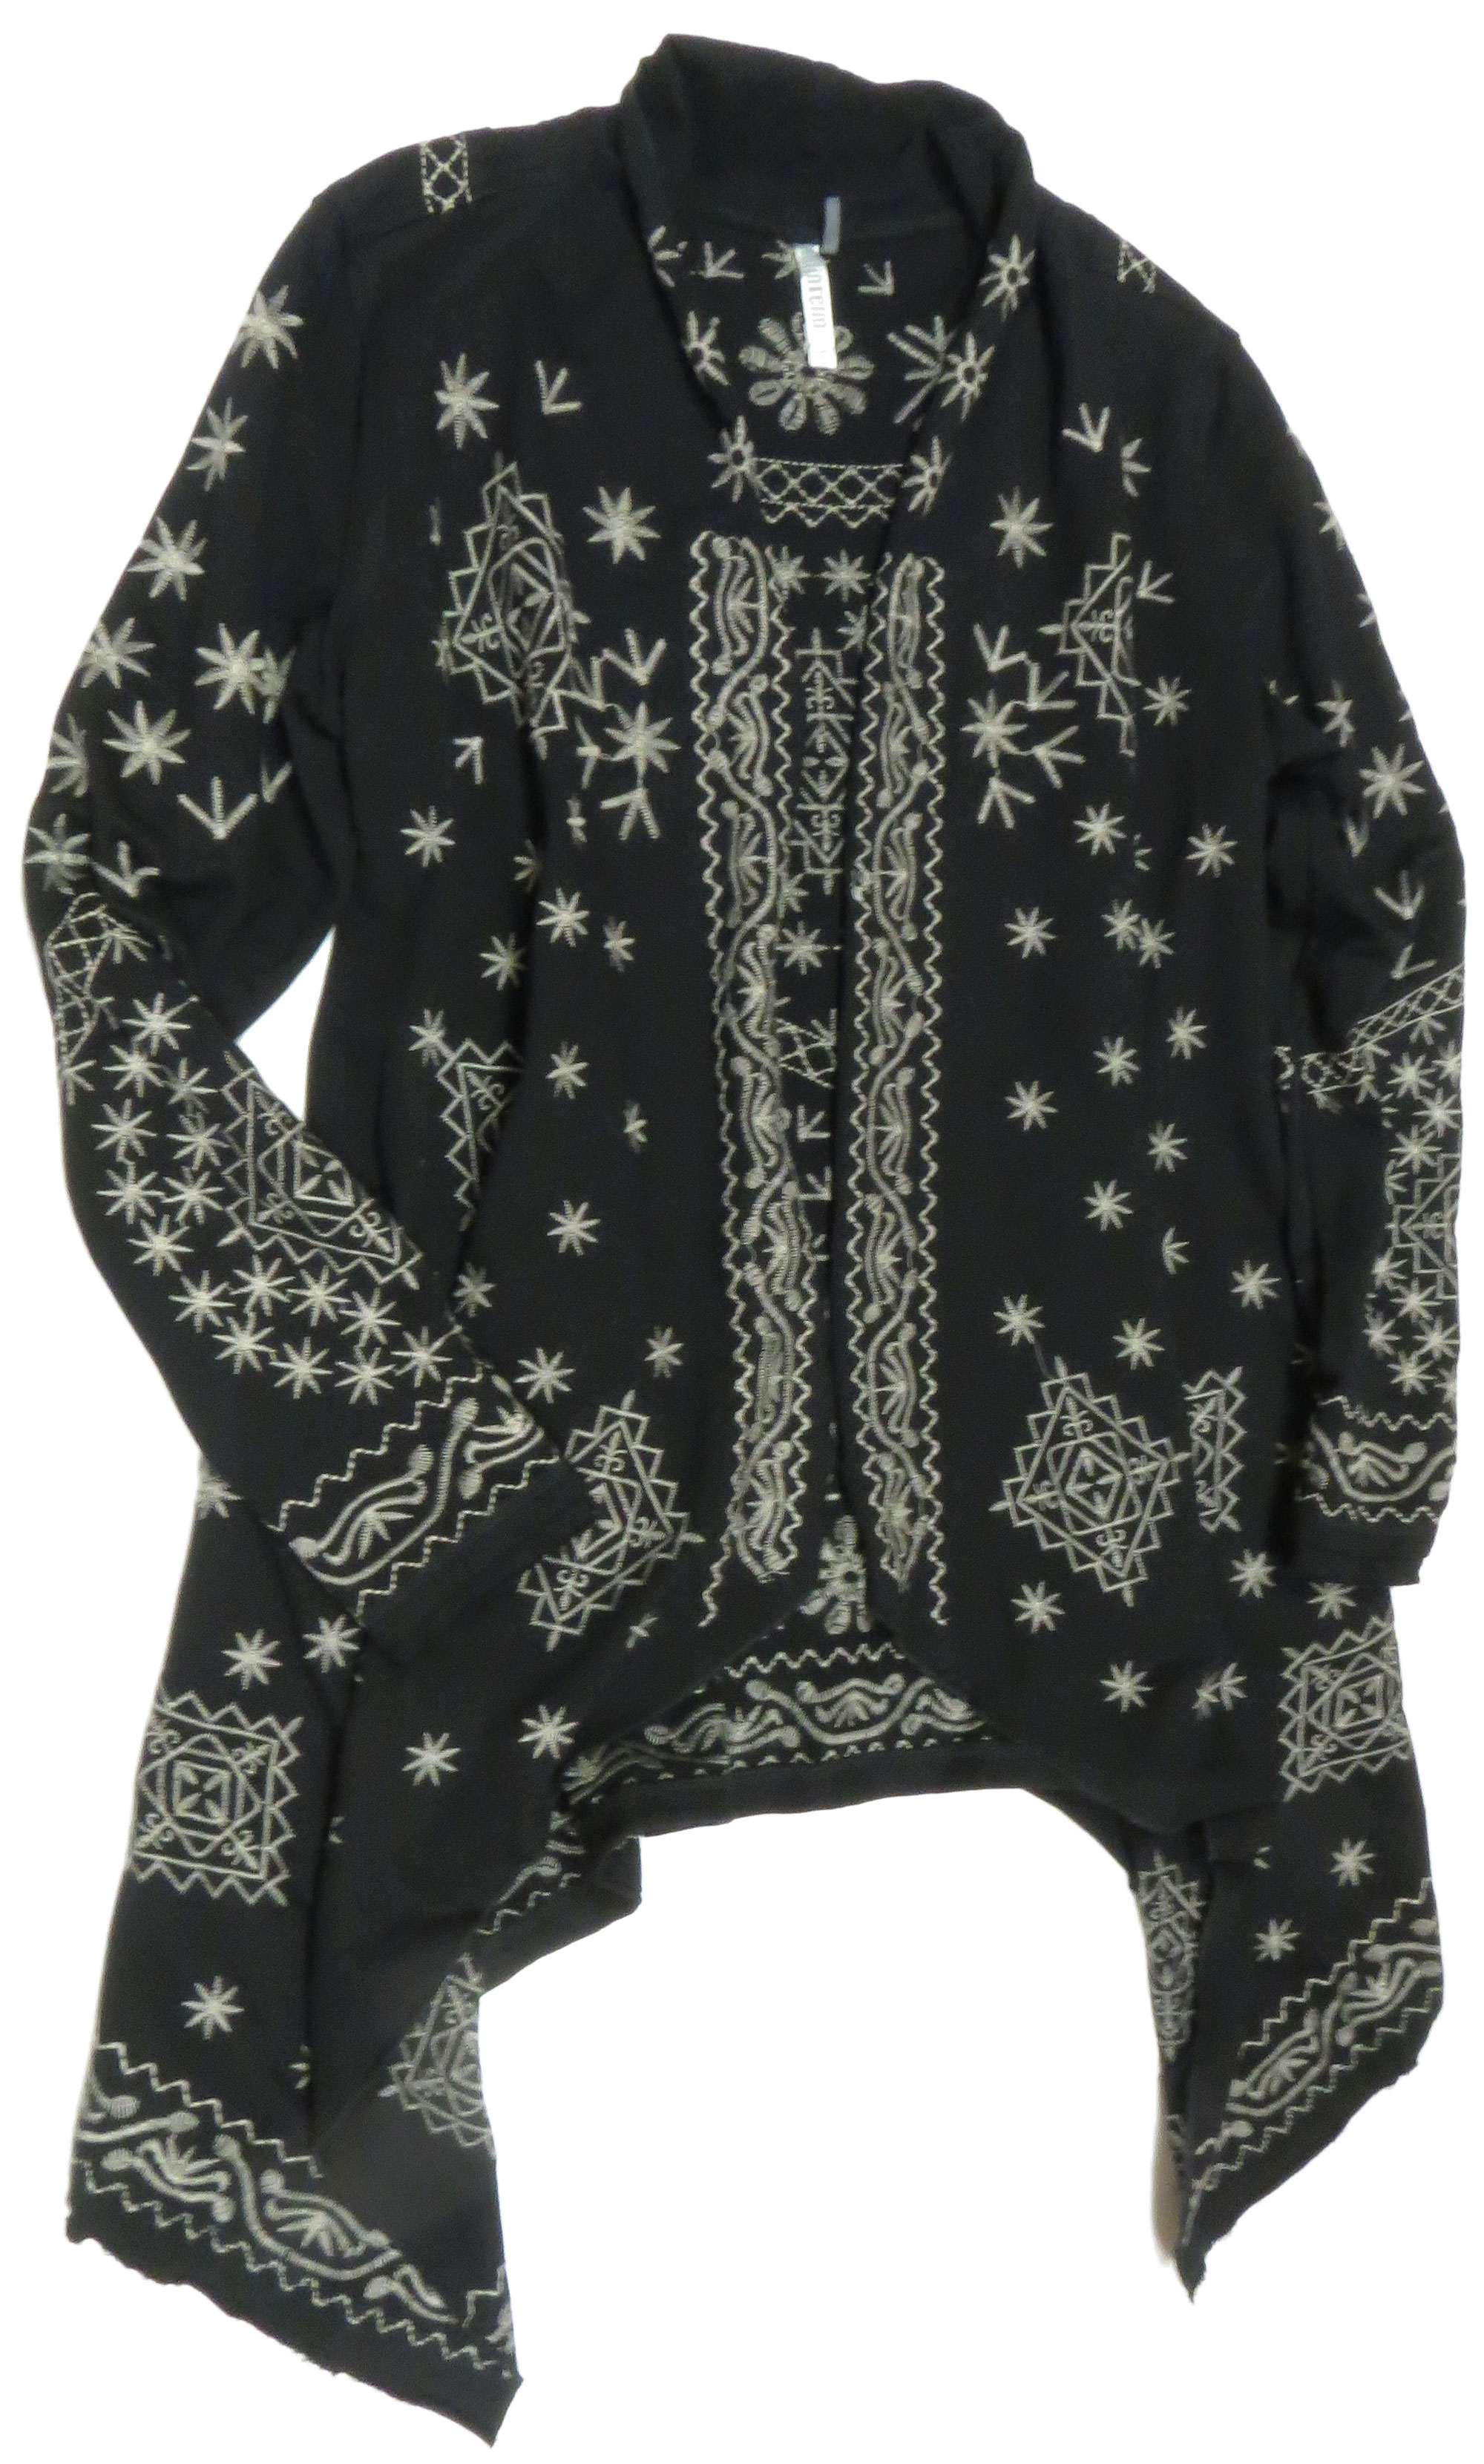 Cutawy Cardigan